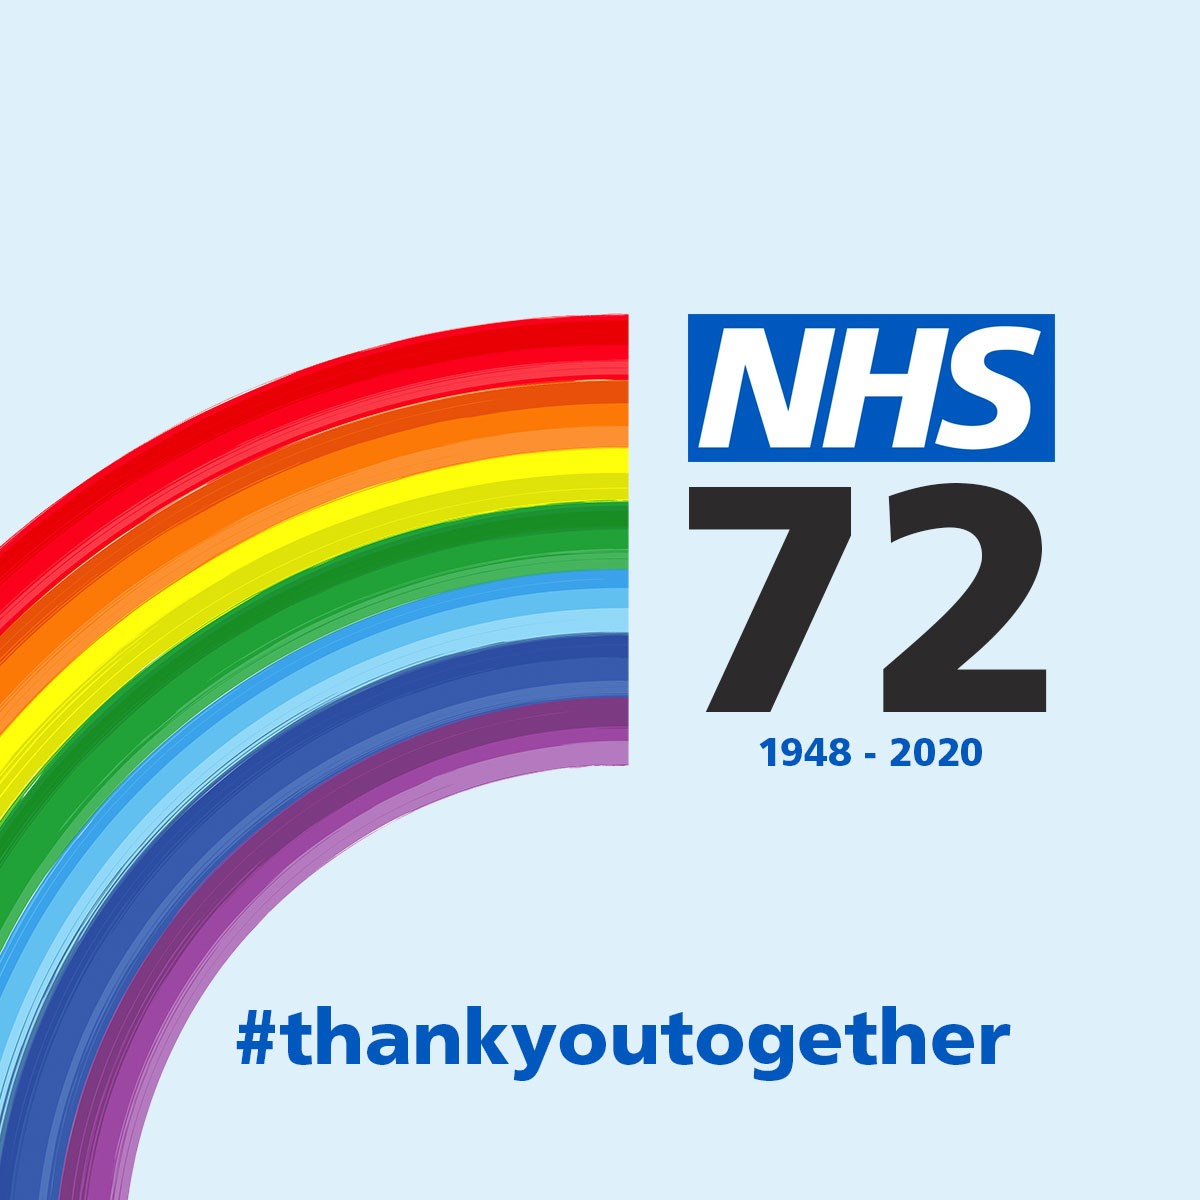 Wishing our wonderful NHS a Happy 72nd Birthday today! 💙   #ThankYouTogether #NHSBirthday https://t.co/zatep278VH